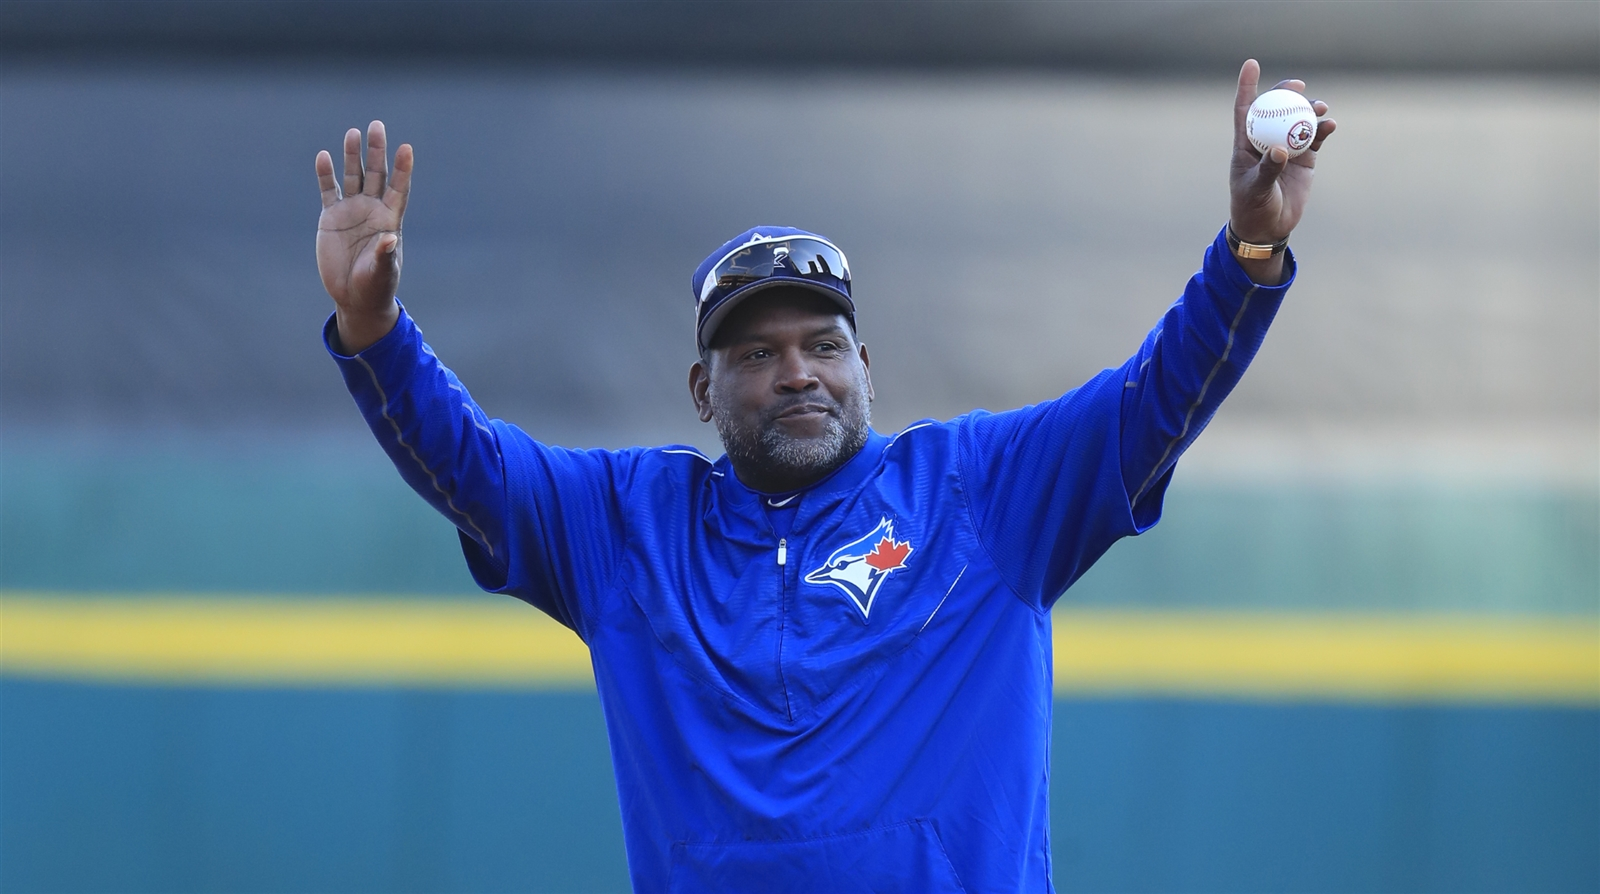 Tim Raines throws out a ceremonial first pitch.